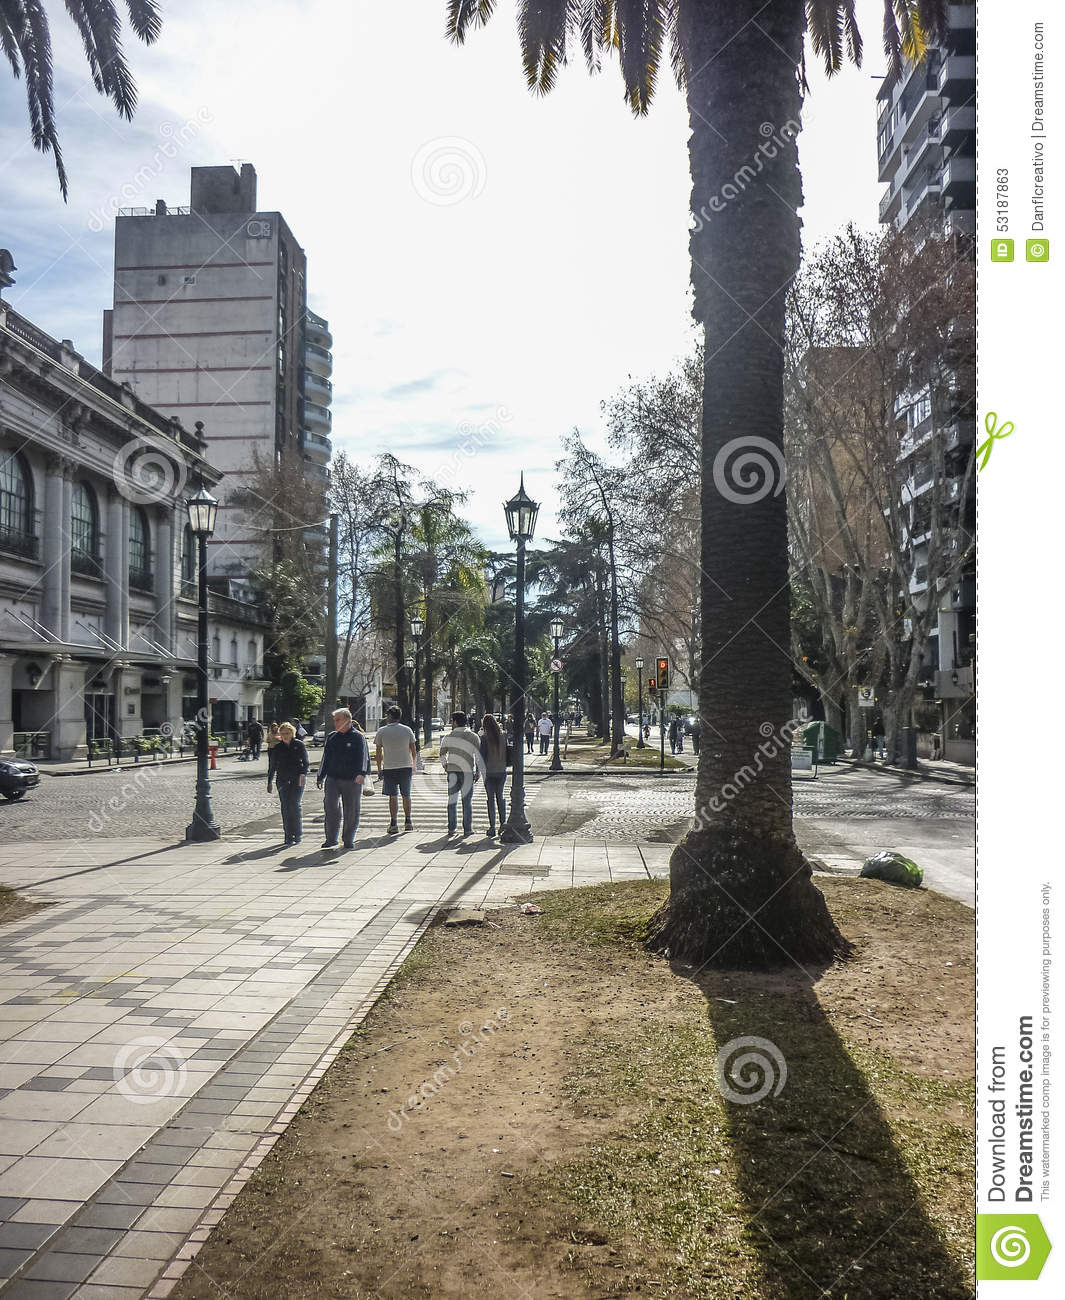 Urban View: Urban View Of Rosario City In Argentina Editorial Stock